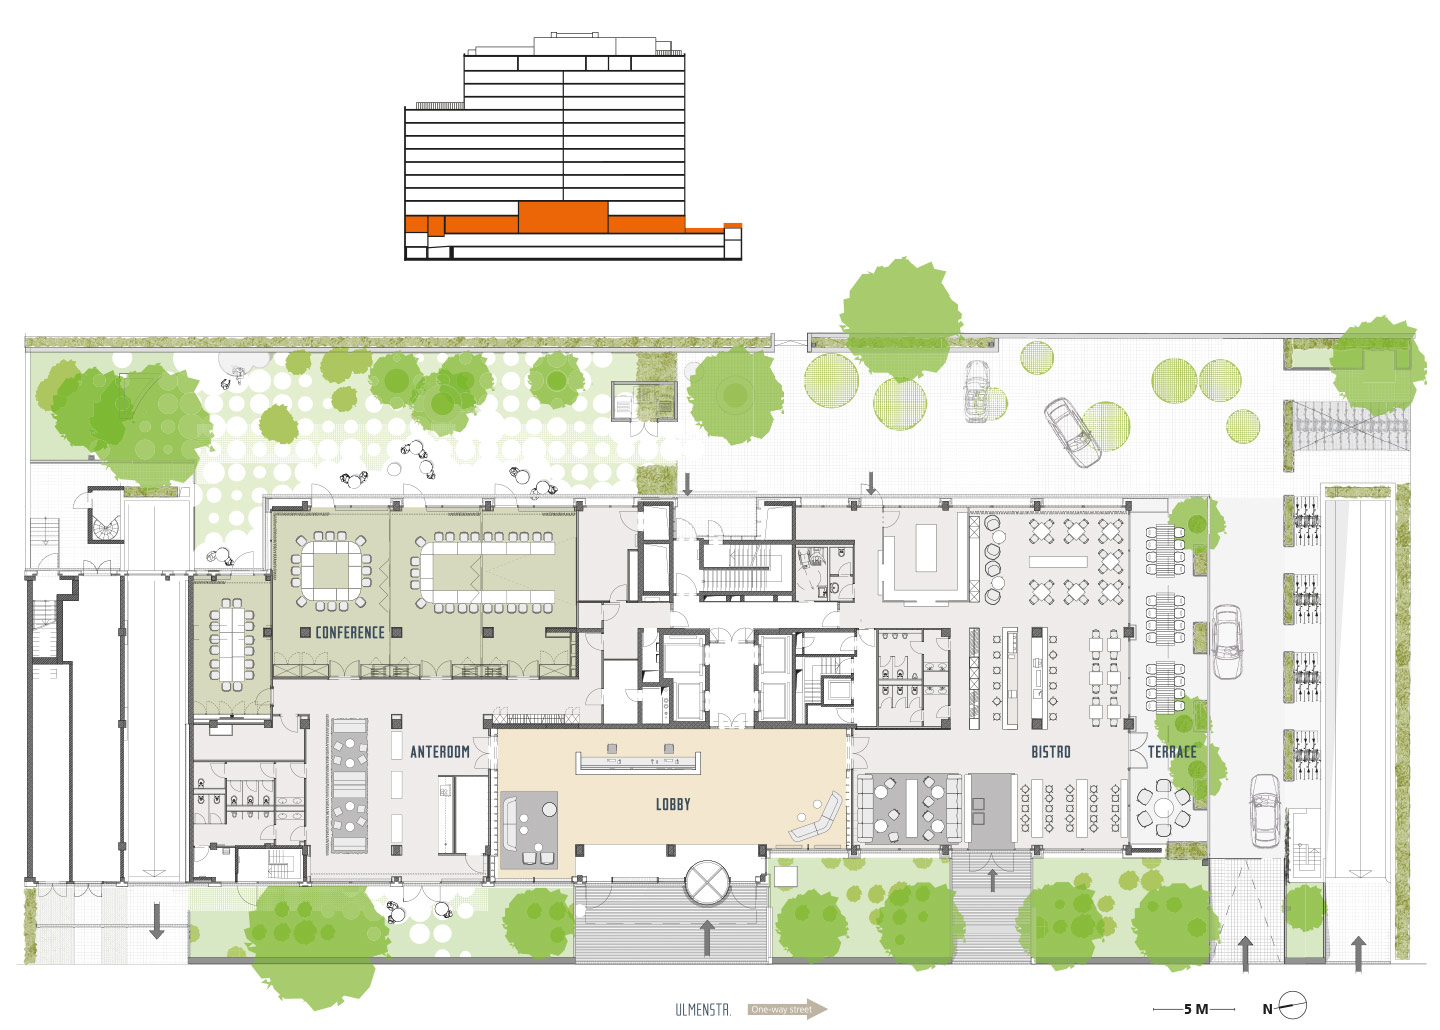 Example of conference area, lobby, bistro with outside terrace*, *All floor plans are indicative preliminary designs.